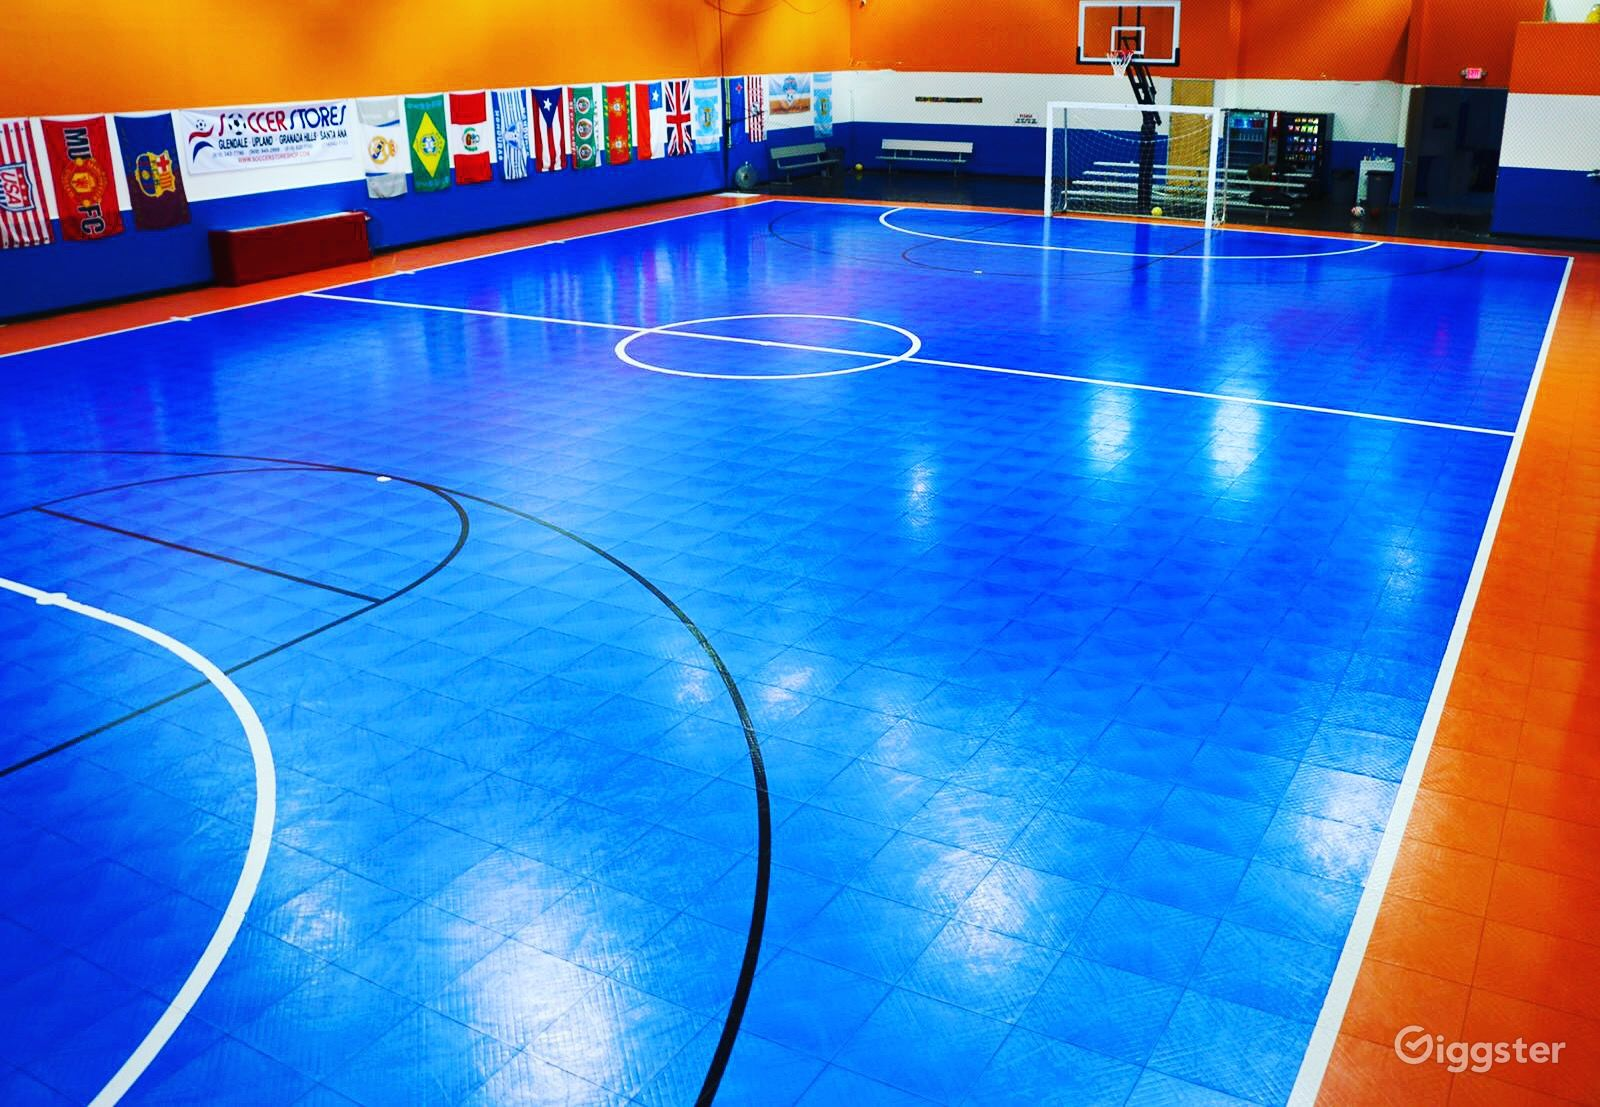 Northridge Futsal Indoor Soccer Basketball Venue Rent This Location On Giggster